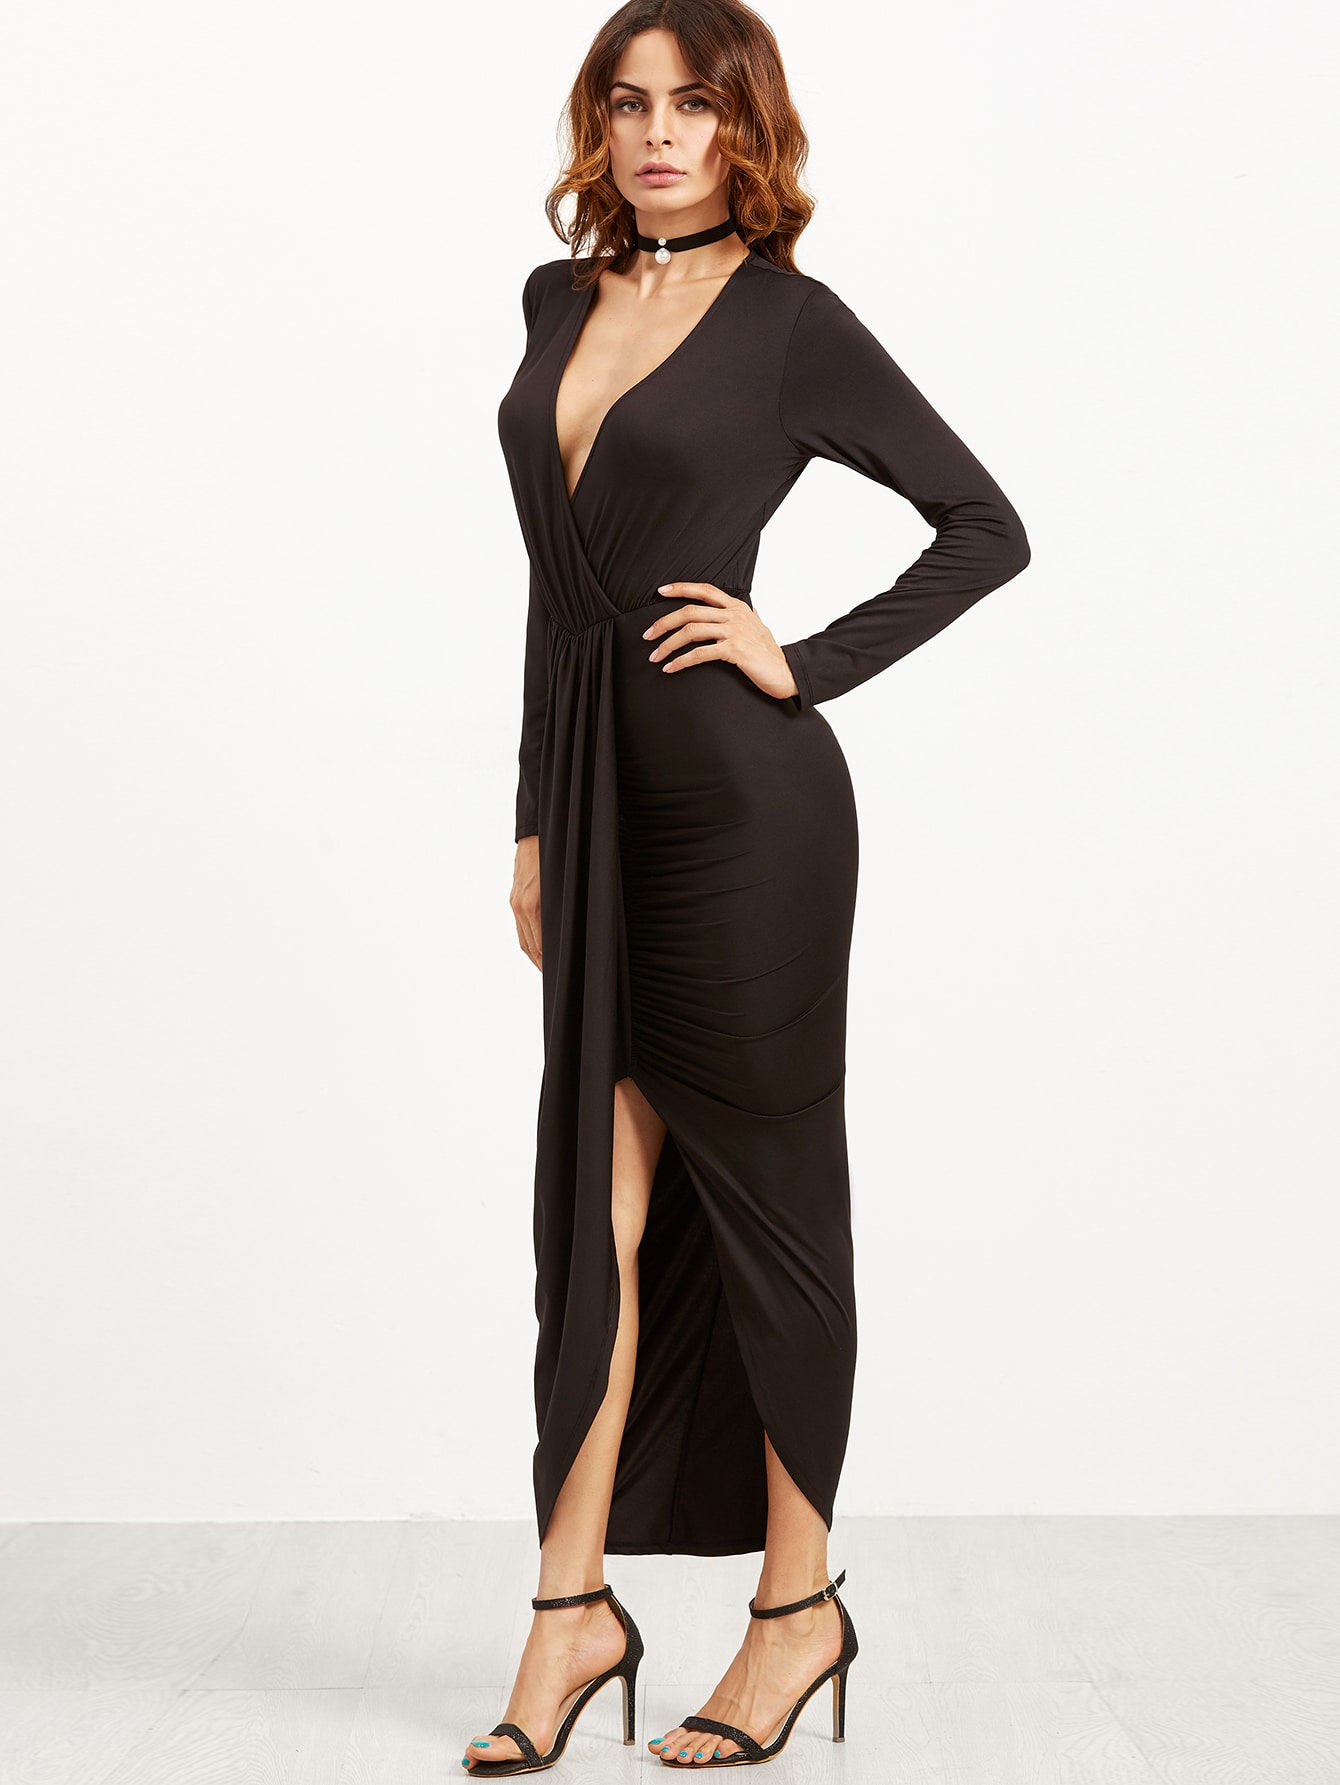 Black Draped Surplice Wrap DressBlack Draped Surplice Wrap Dress<br><br>color: Black<br>size: L,M,S,XS